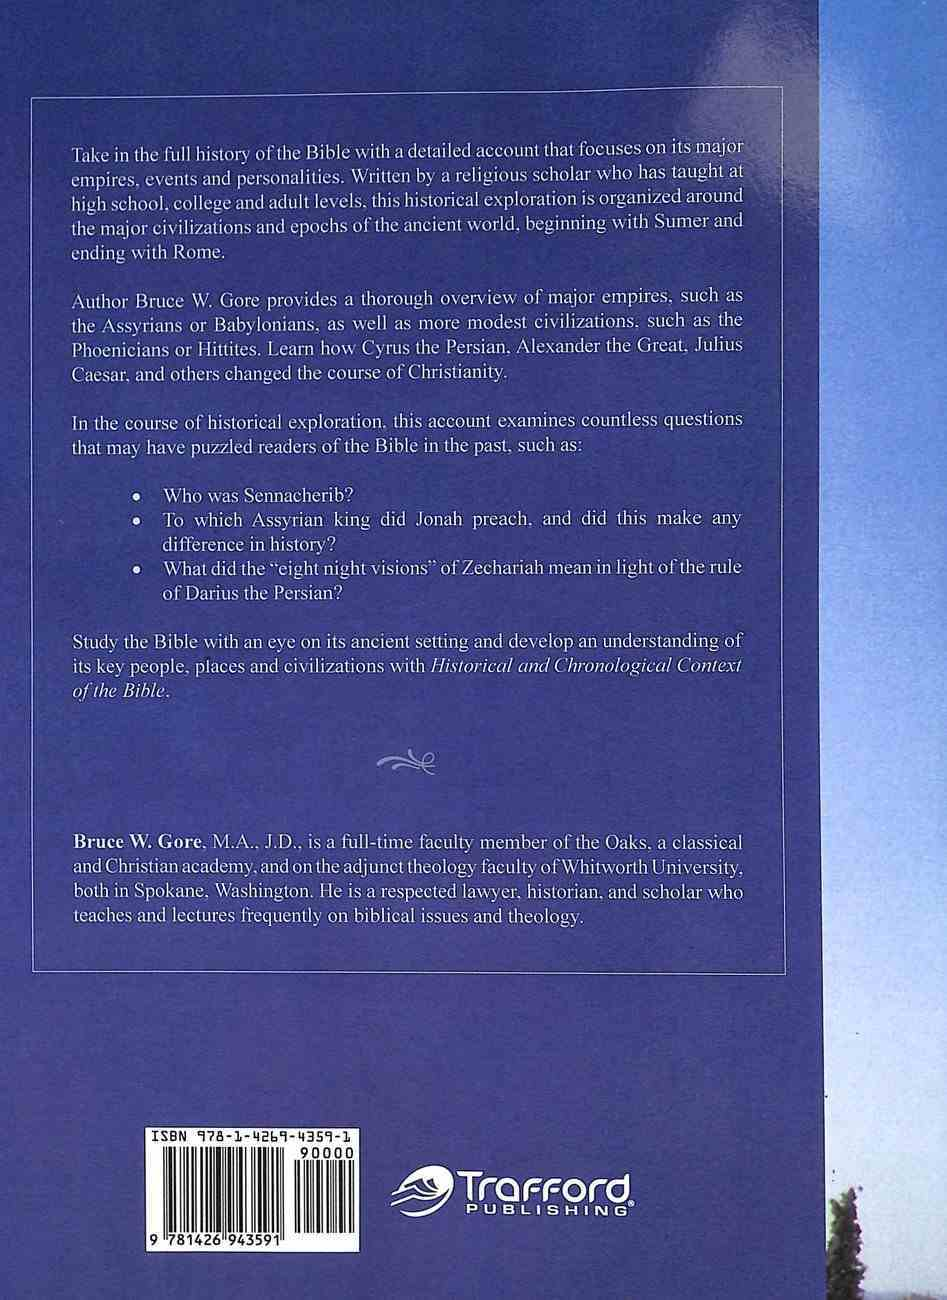 Historical and Chronological Context of the Bible Paperback